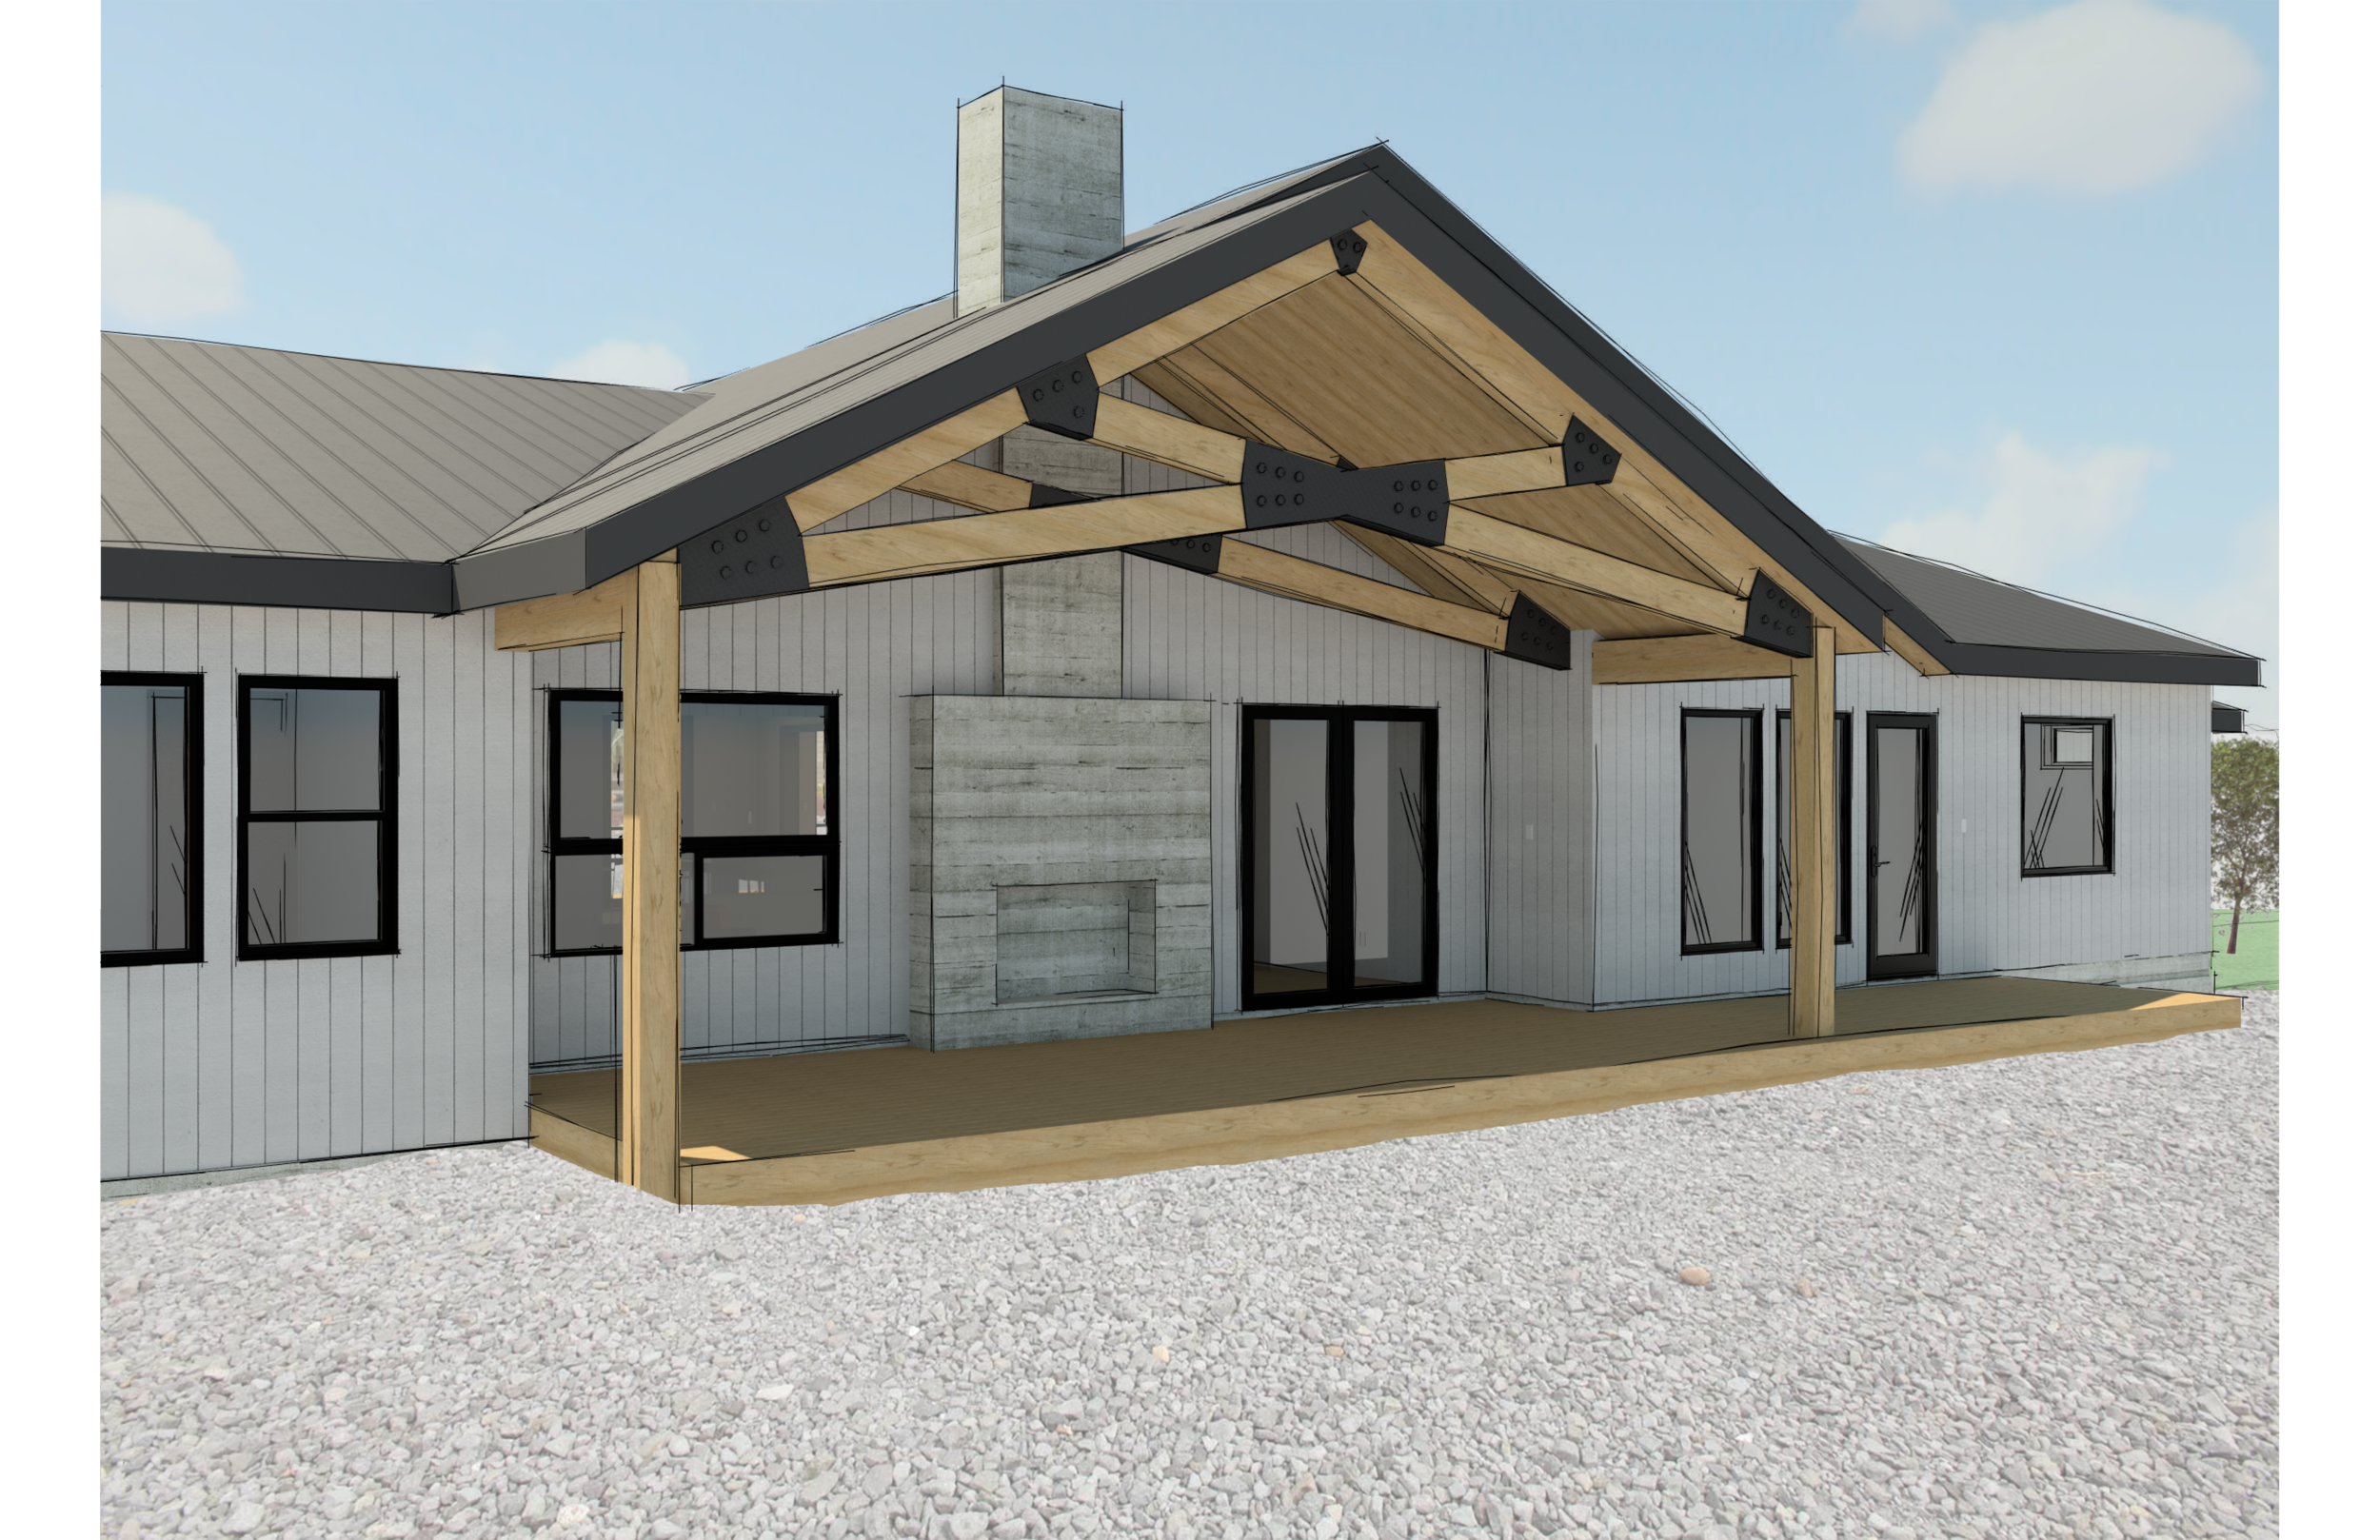 walnut_house_render_front_exterior.png